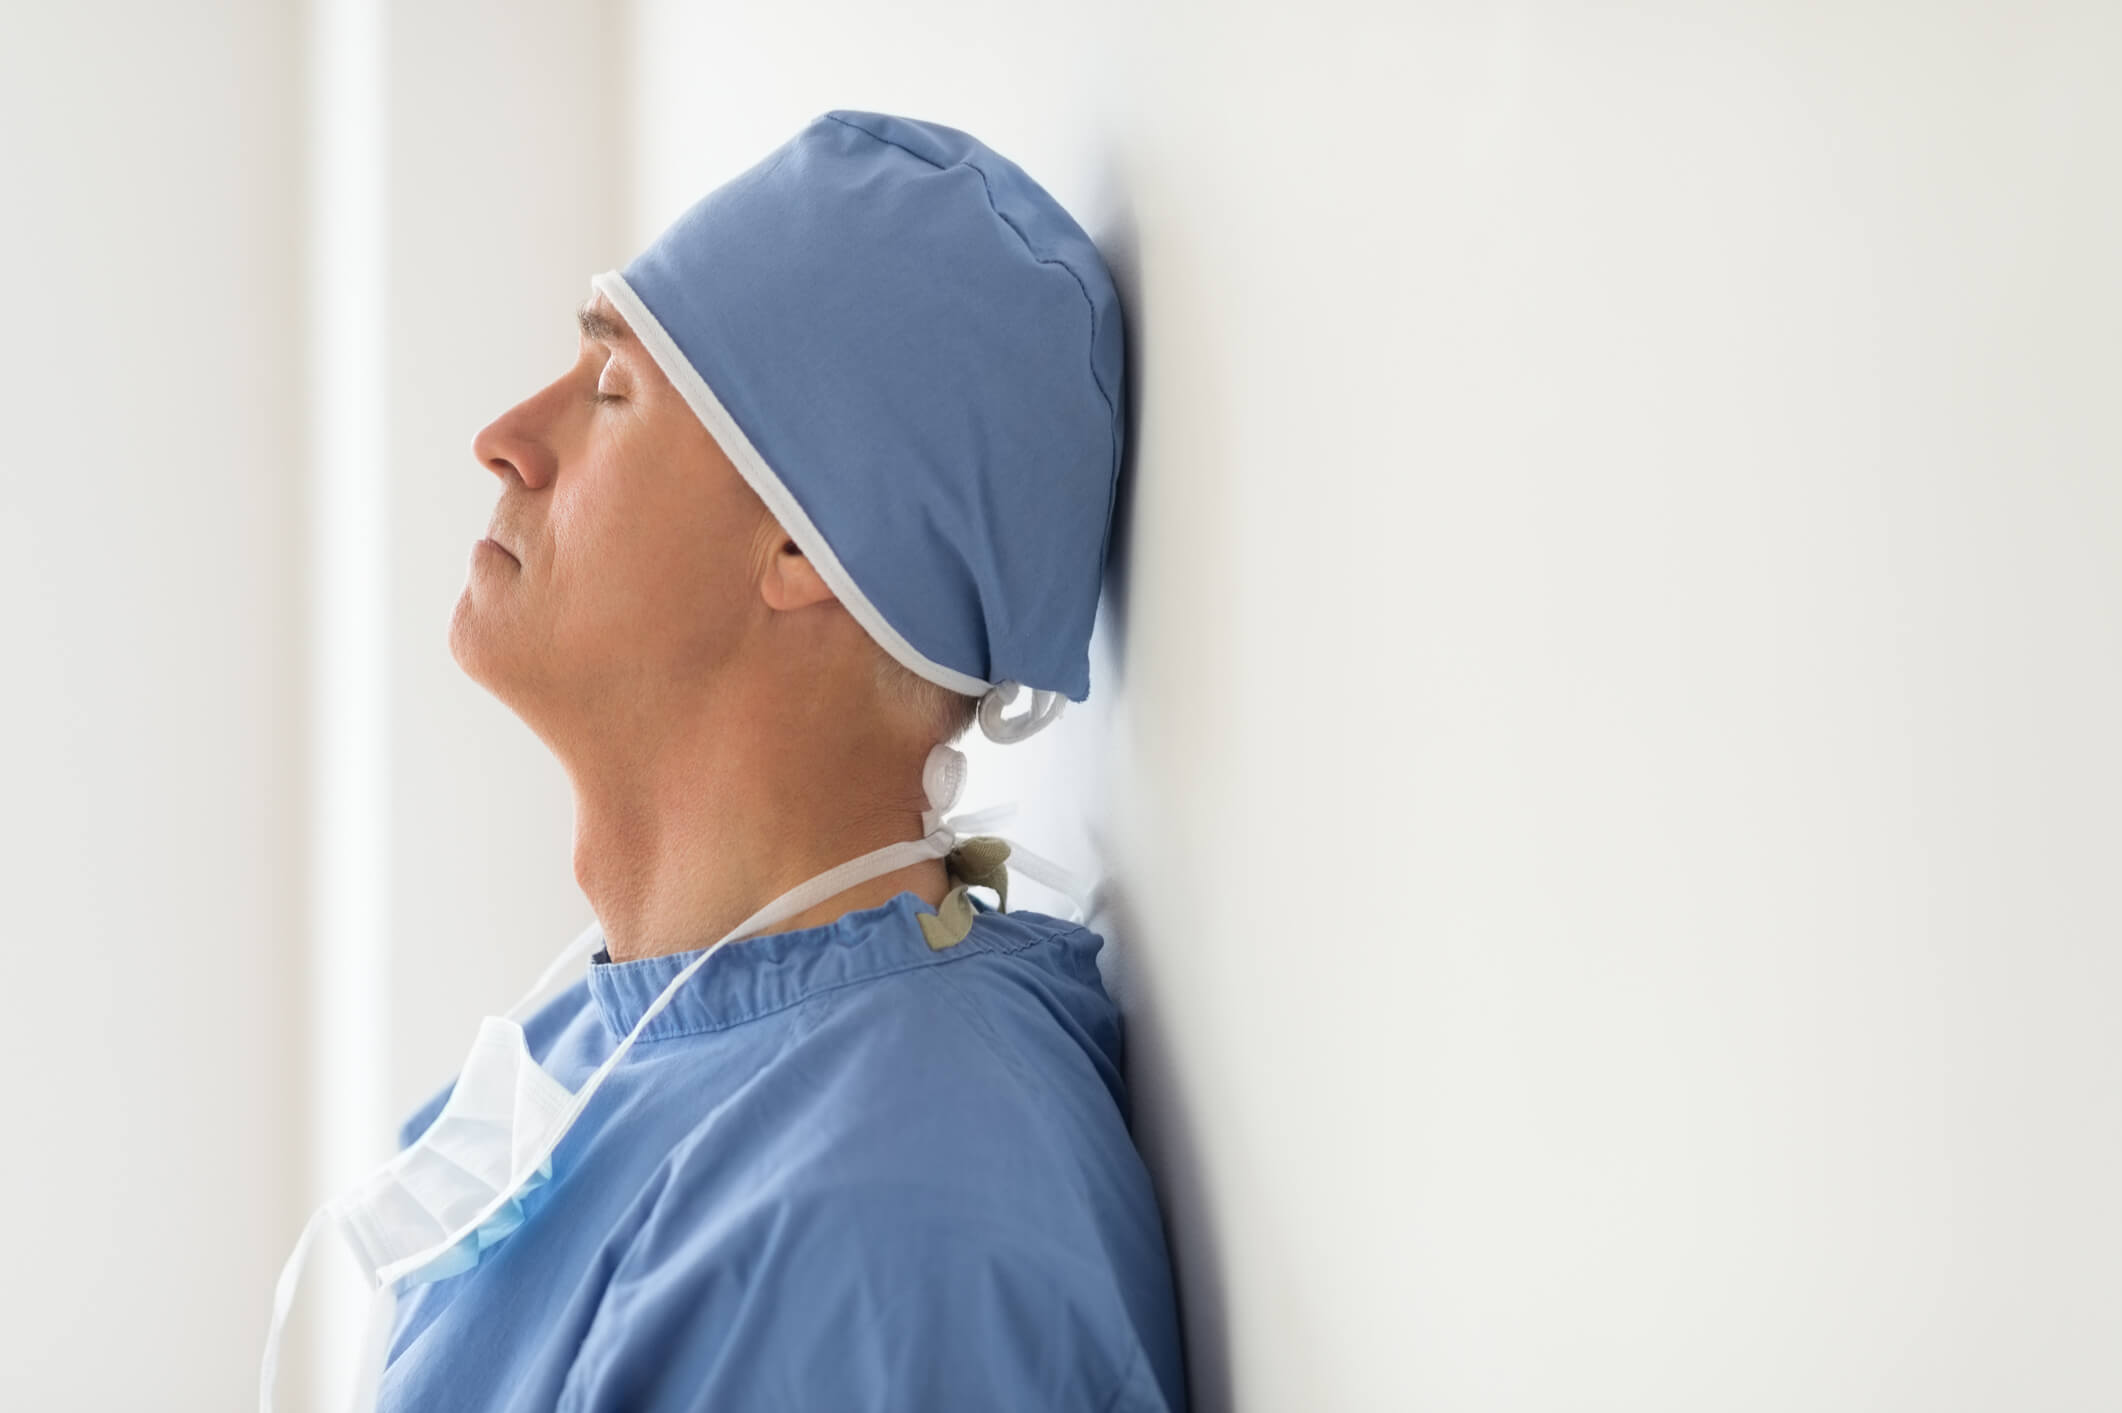 Ehrs Currently Contribute To Physician Burnout But We